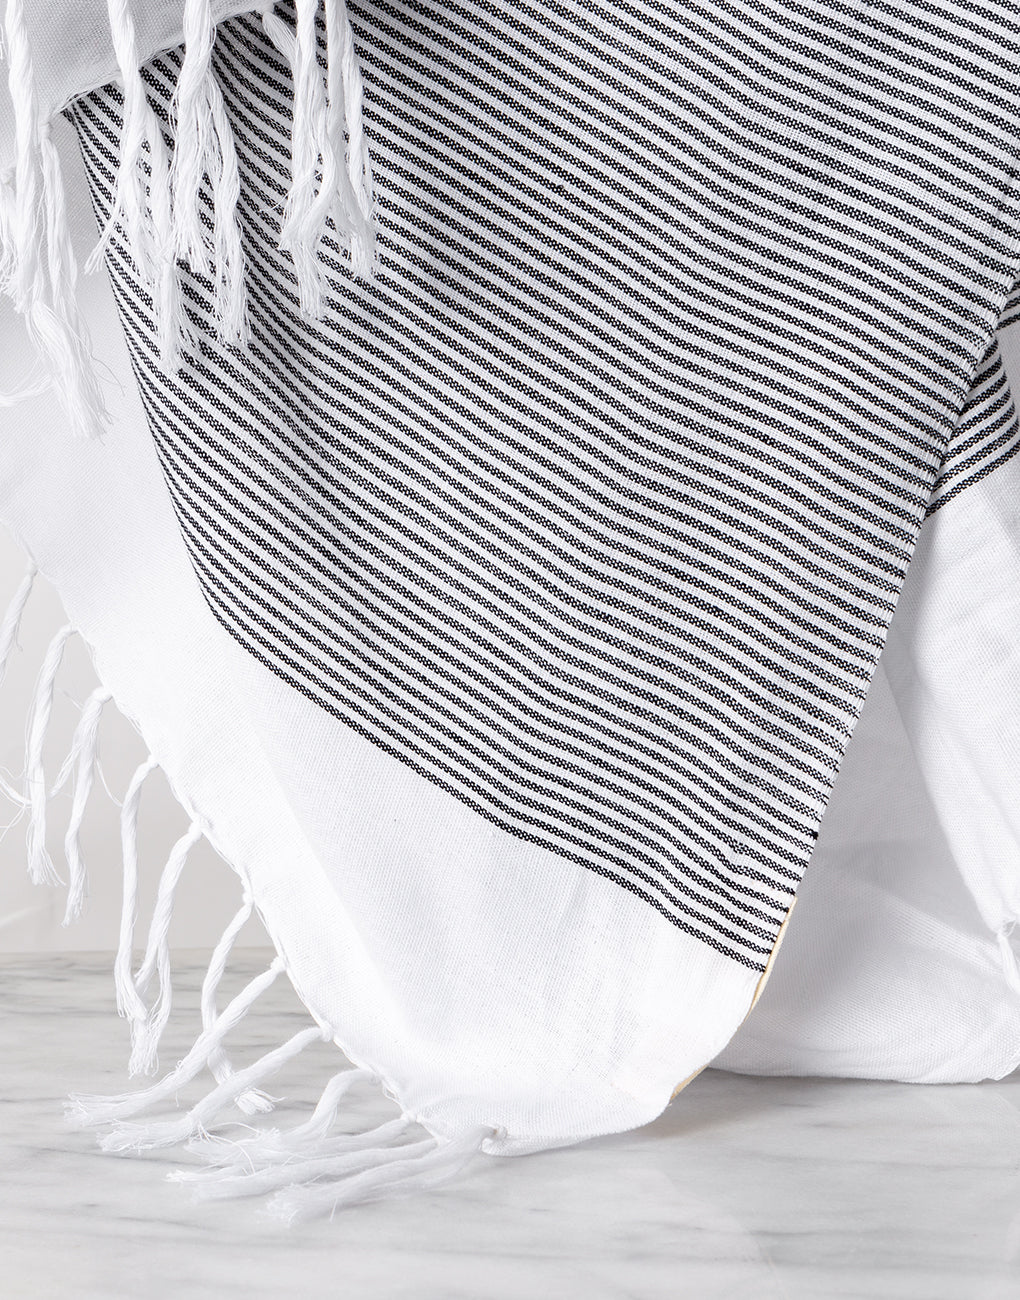 Lightweight Fringe Towel In Style No. 1 In Black Close Up | The Little Market